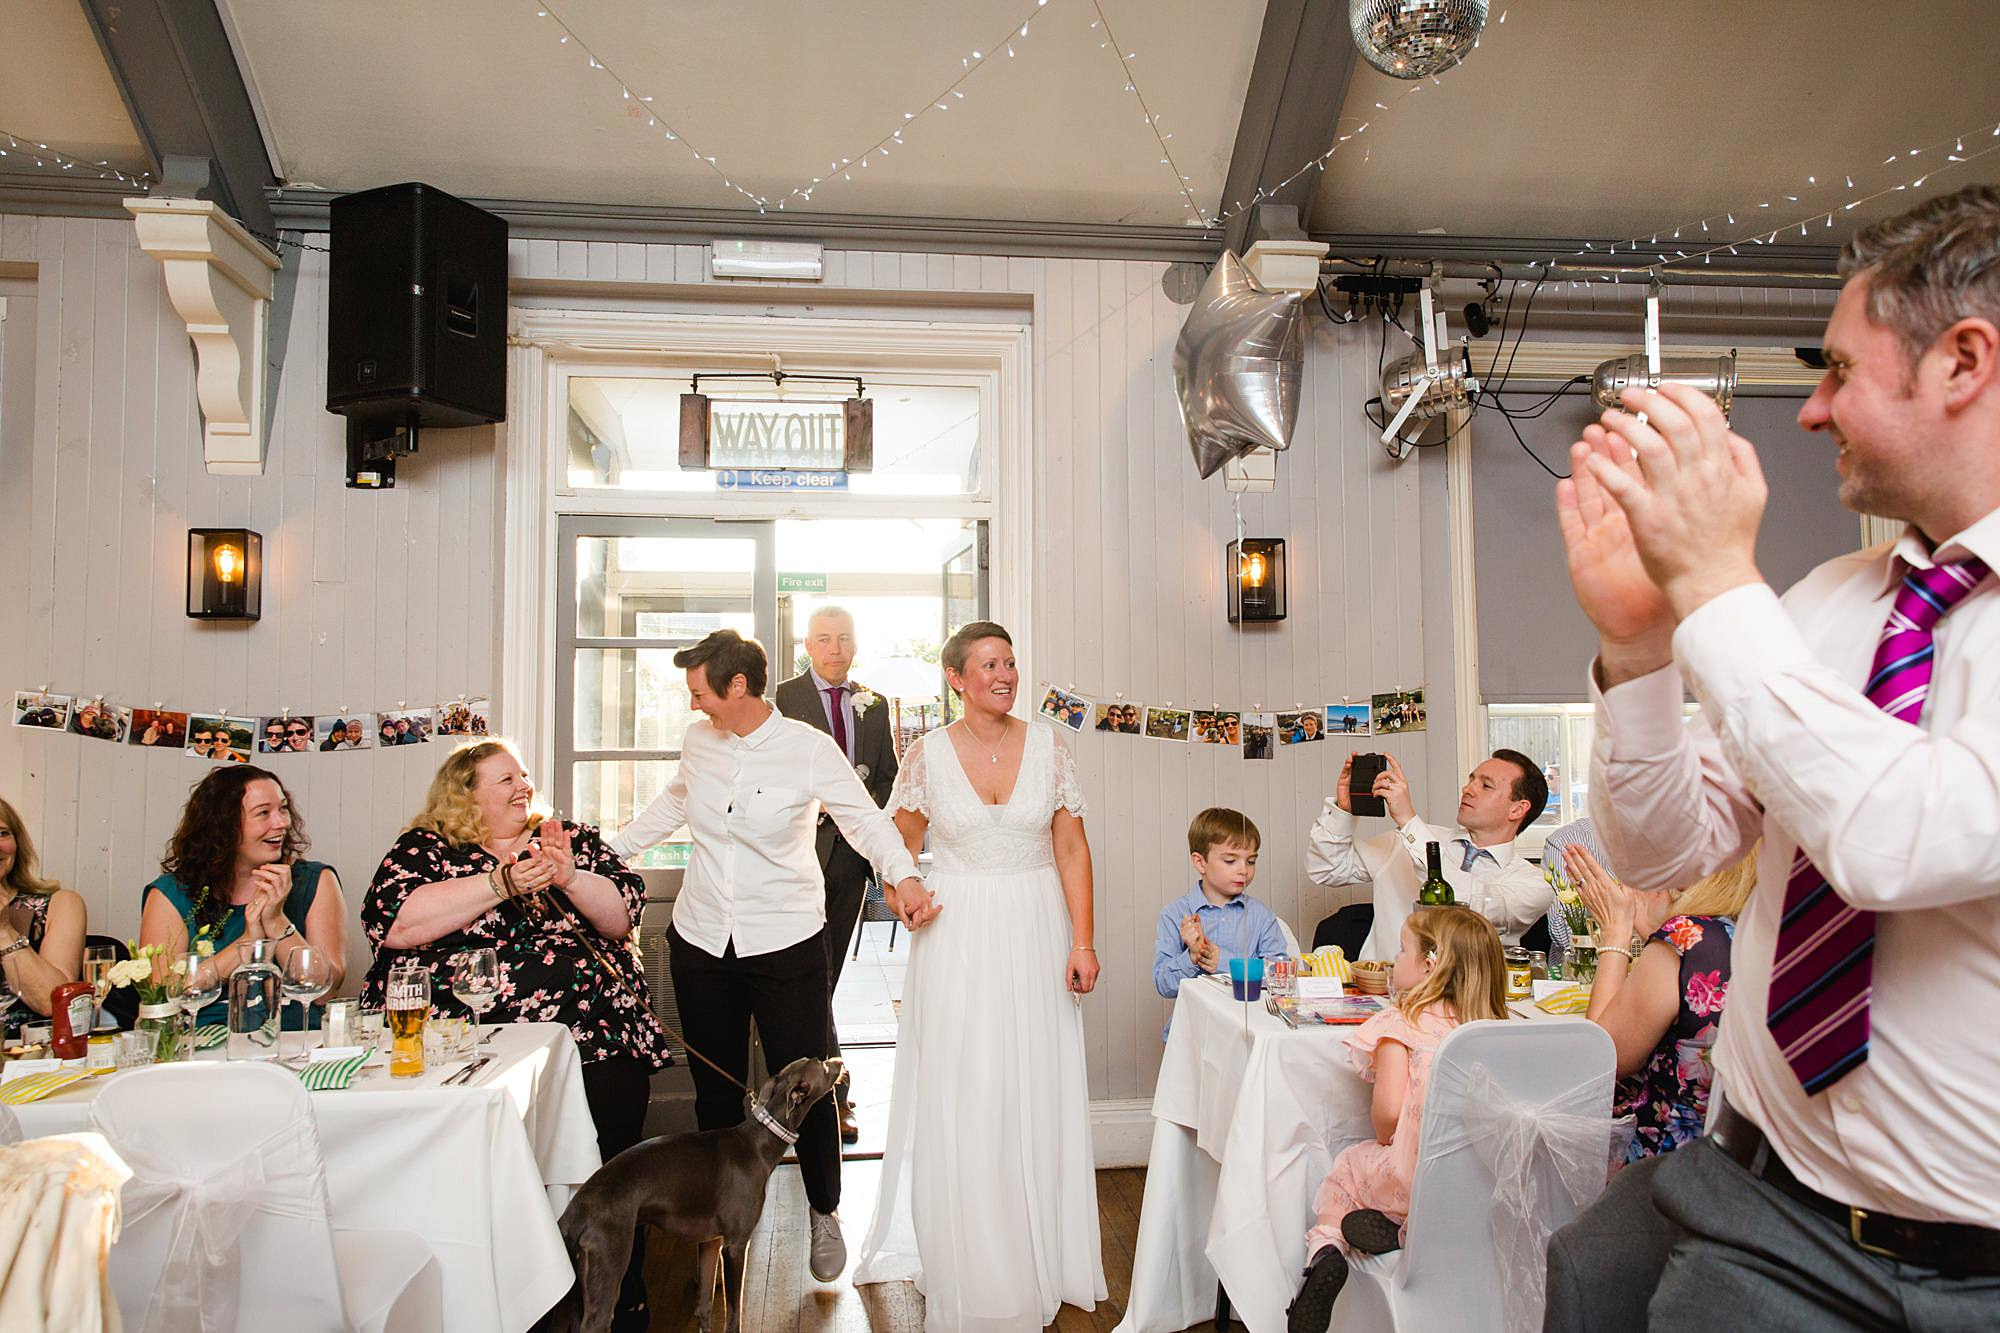 Twickenham wedding photography brides enter to guest cheers at turks head pub